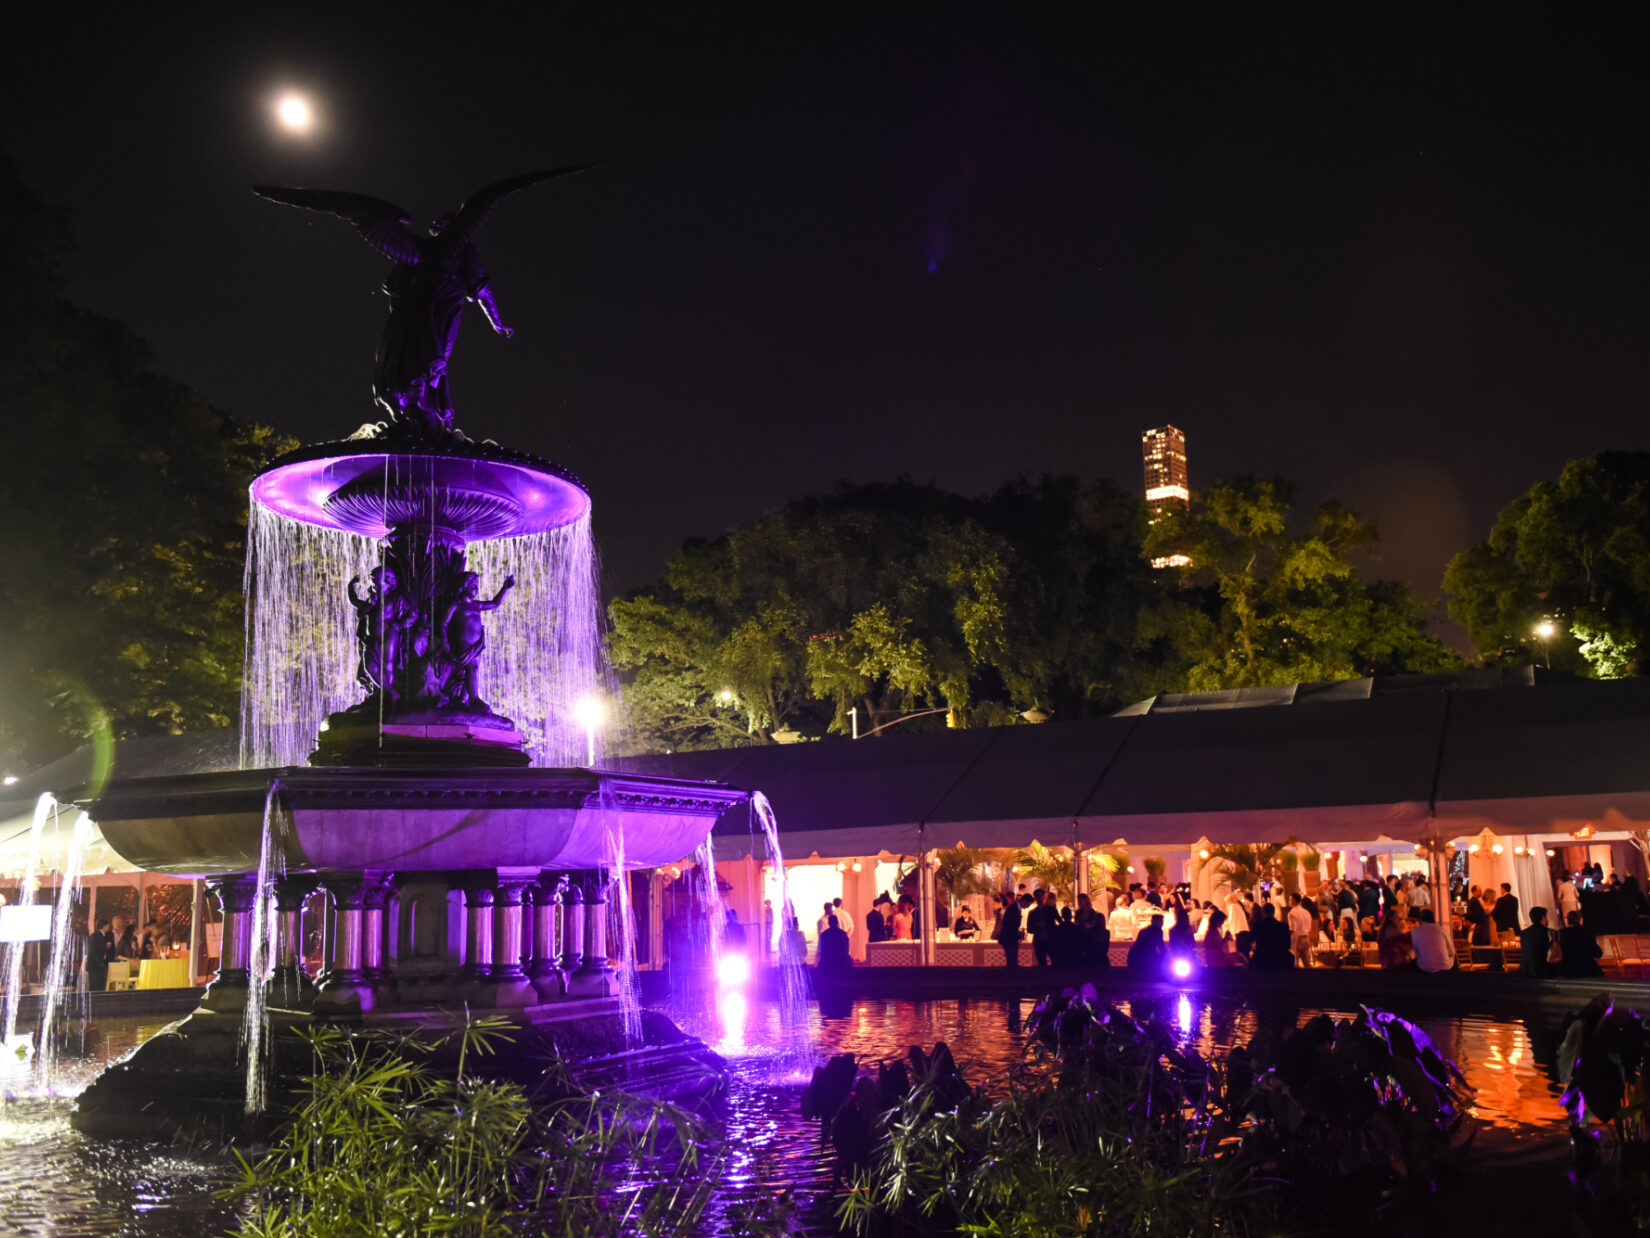 Bethesda Fountain, at night, lit for the occasion, with diners in a tent in the background